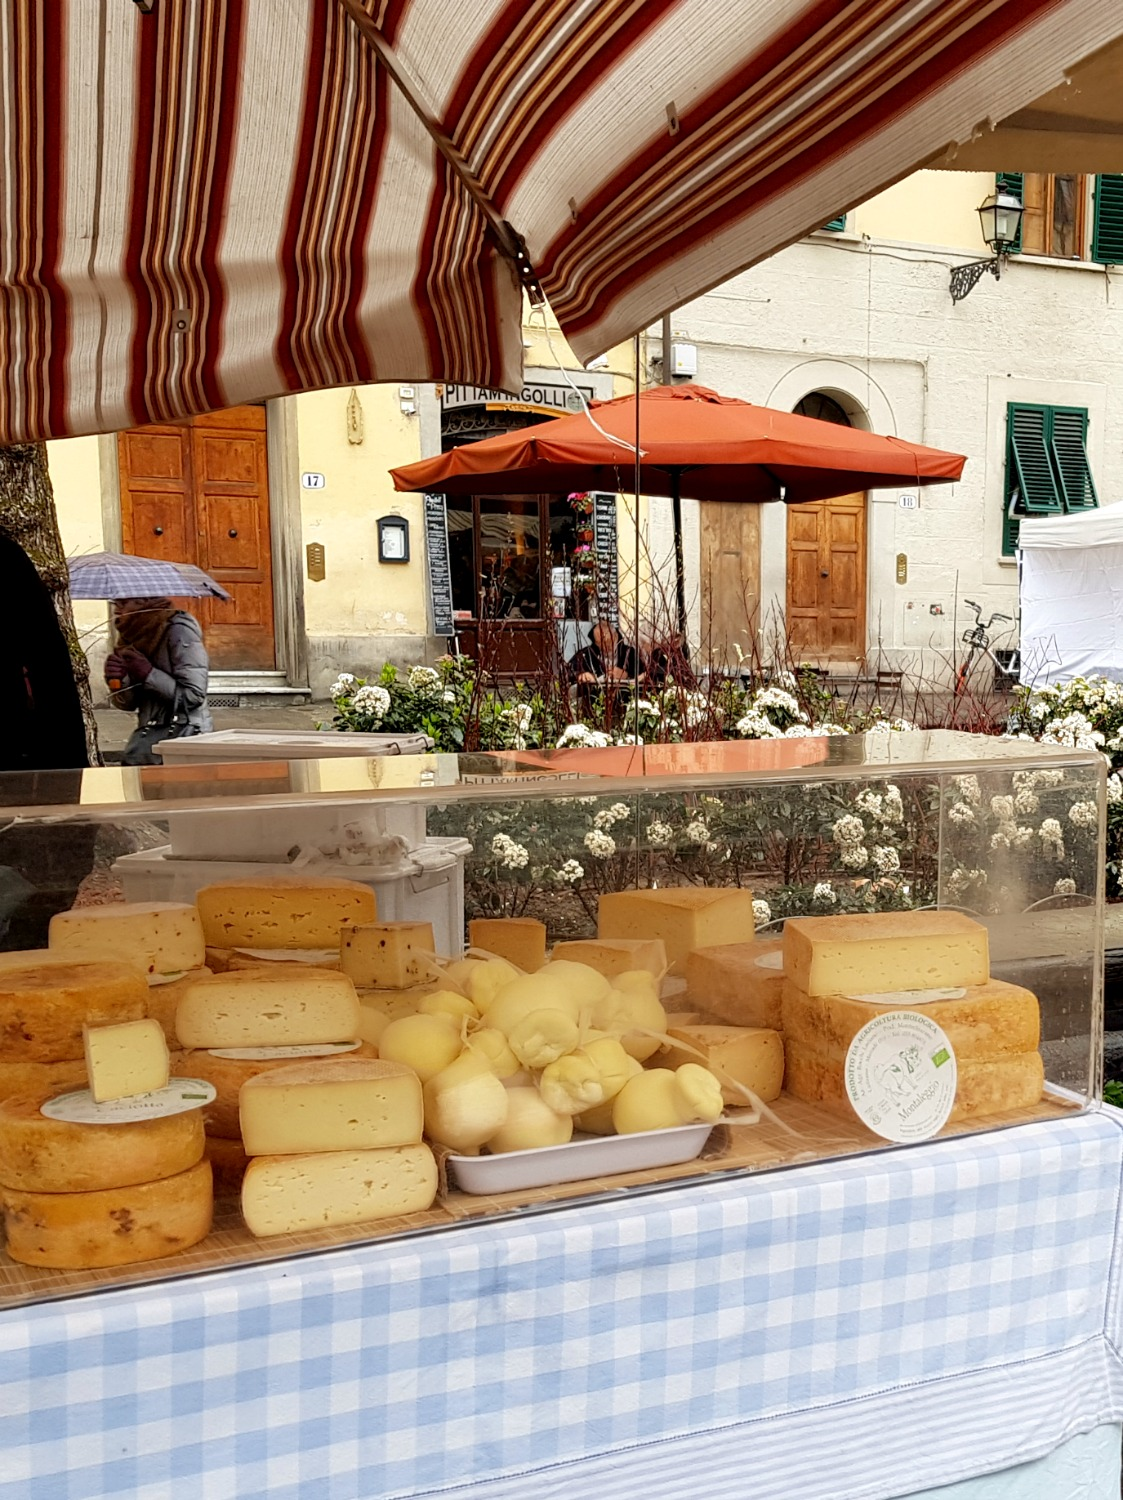 Cheese for sale at a farmer's market in Florence, Italy - my Uffizi tour with kids and gelato making day in Florence